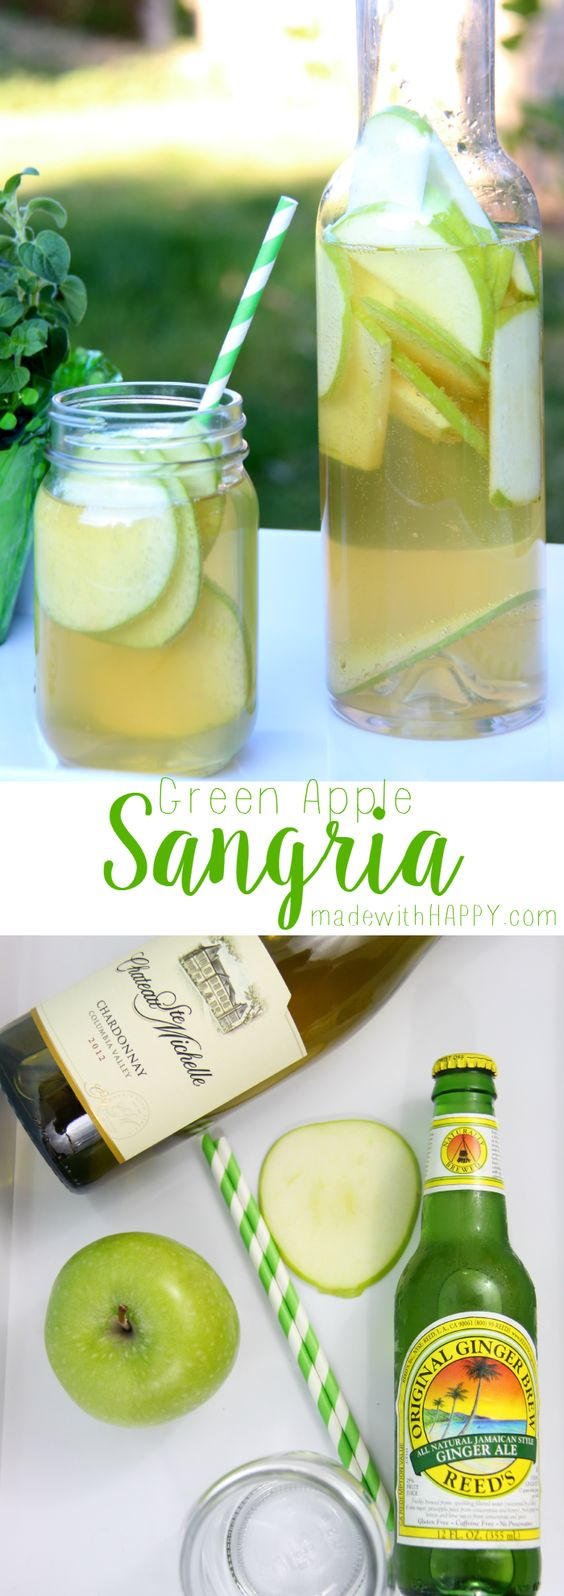 Green apple sangria apple sangria sangria and apples for Green apple mixed drinks